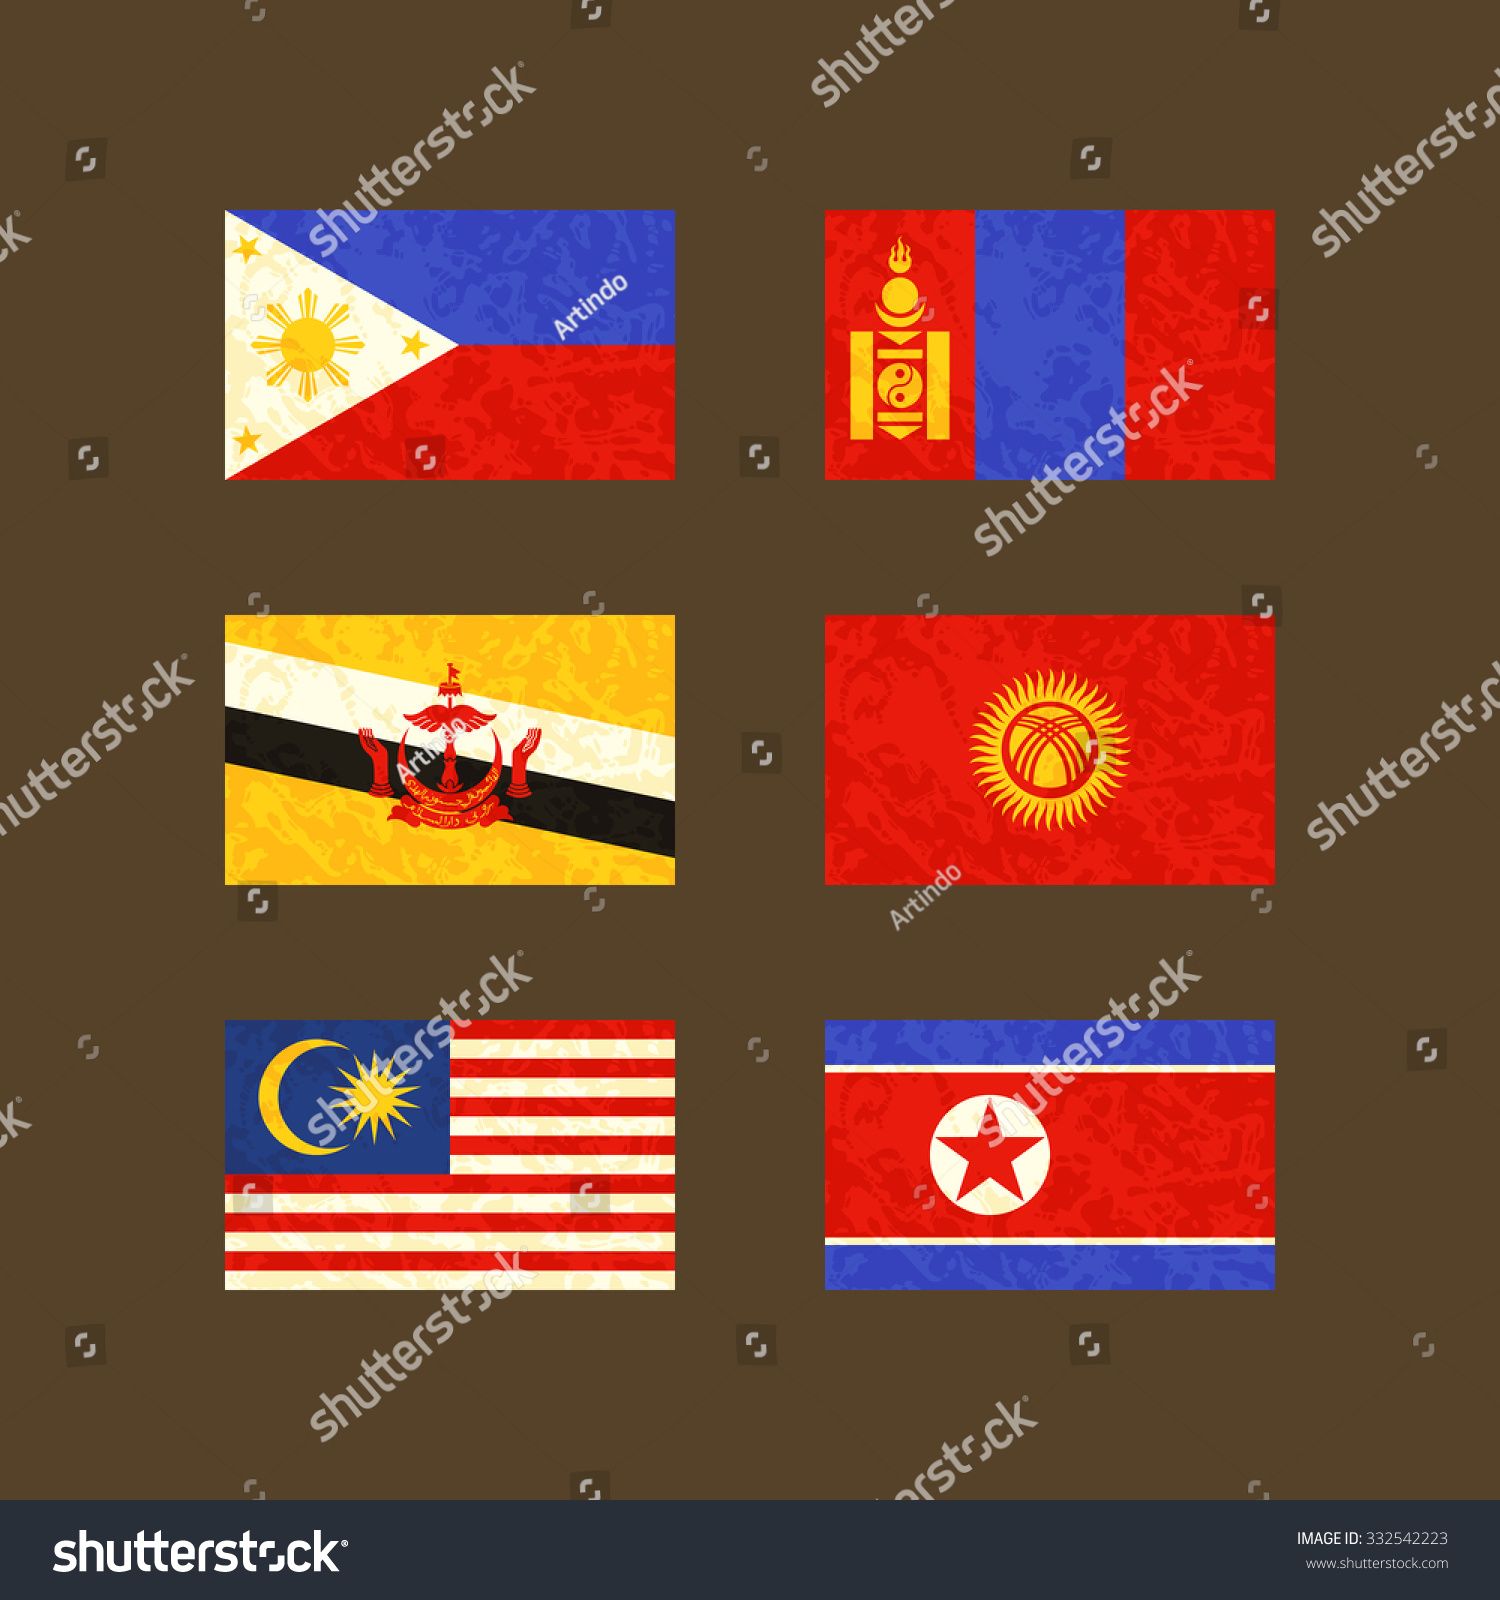 Flags Philippines Brunei Malaysia Mongolia Kyrgyzstan Stock Vector ...